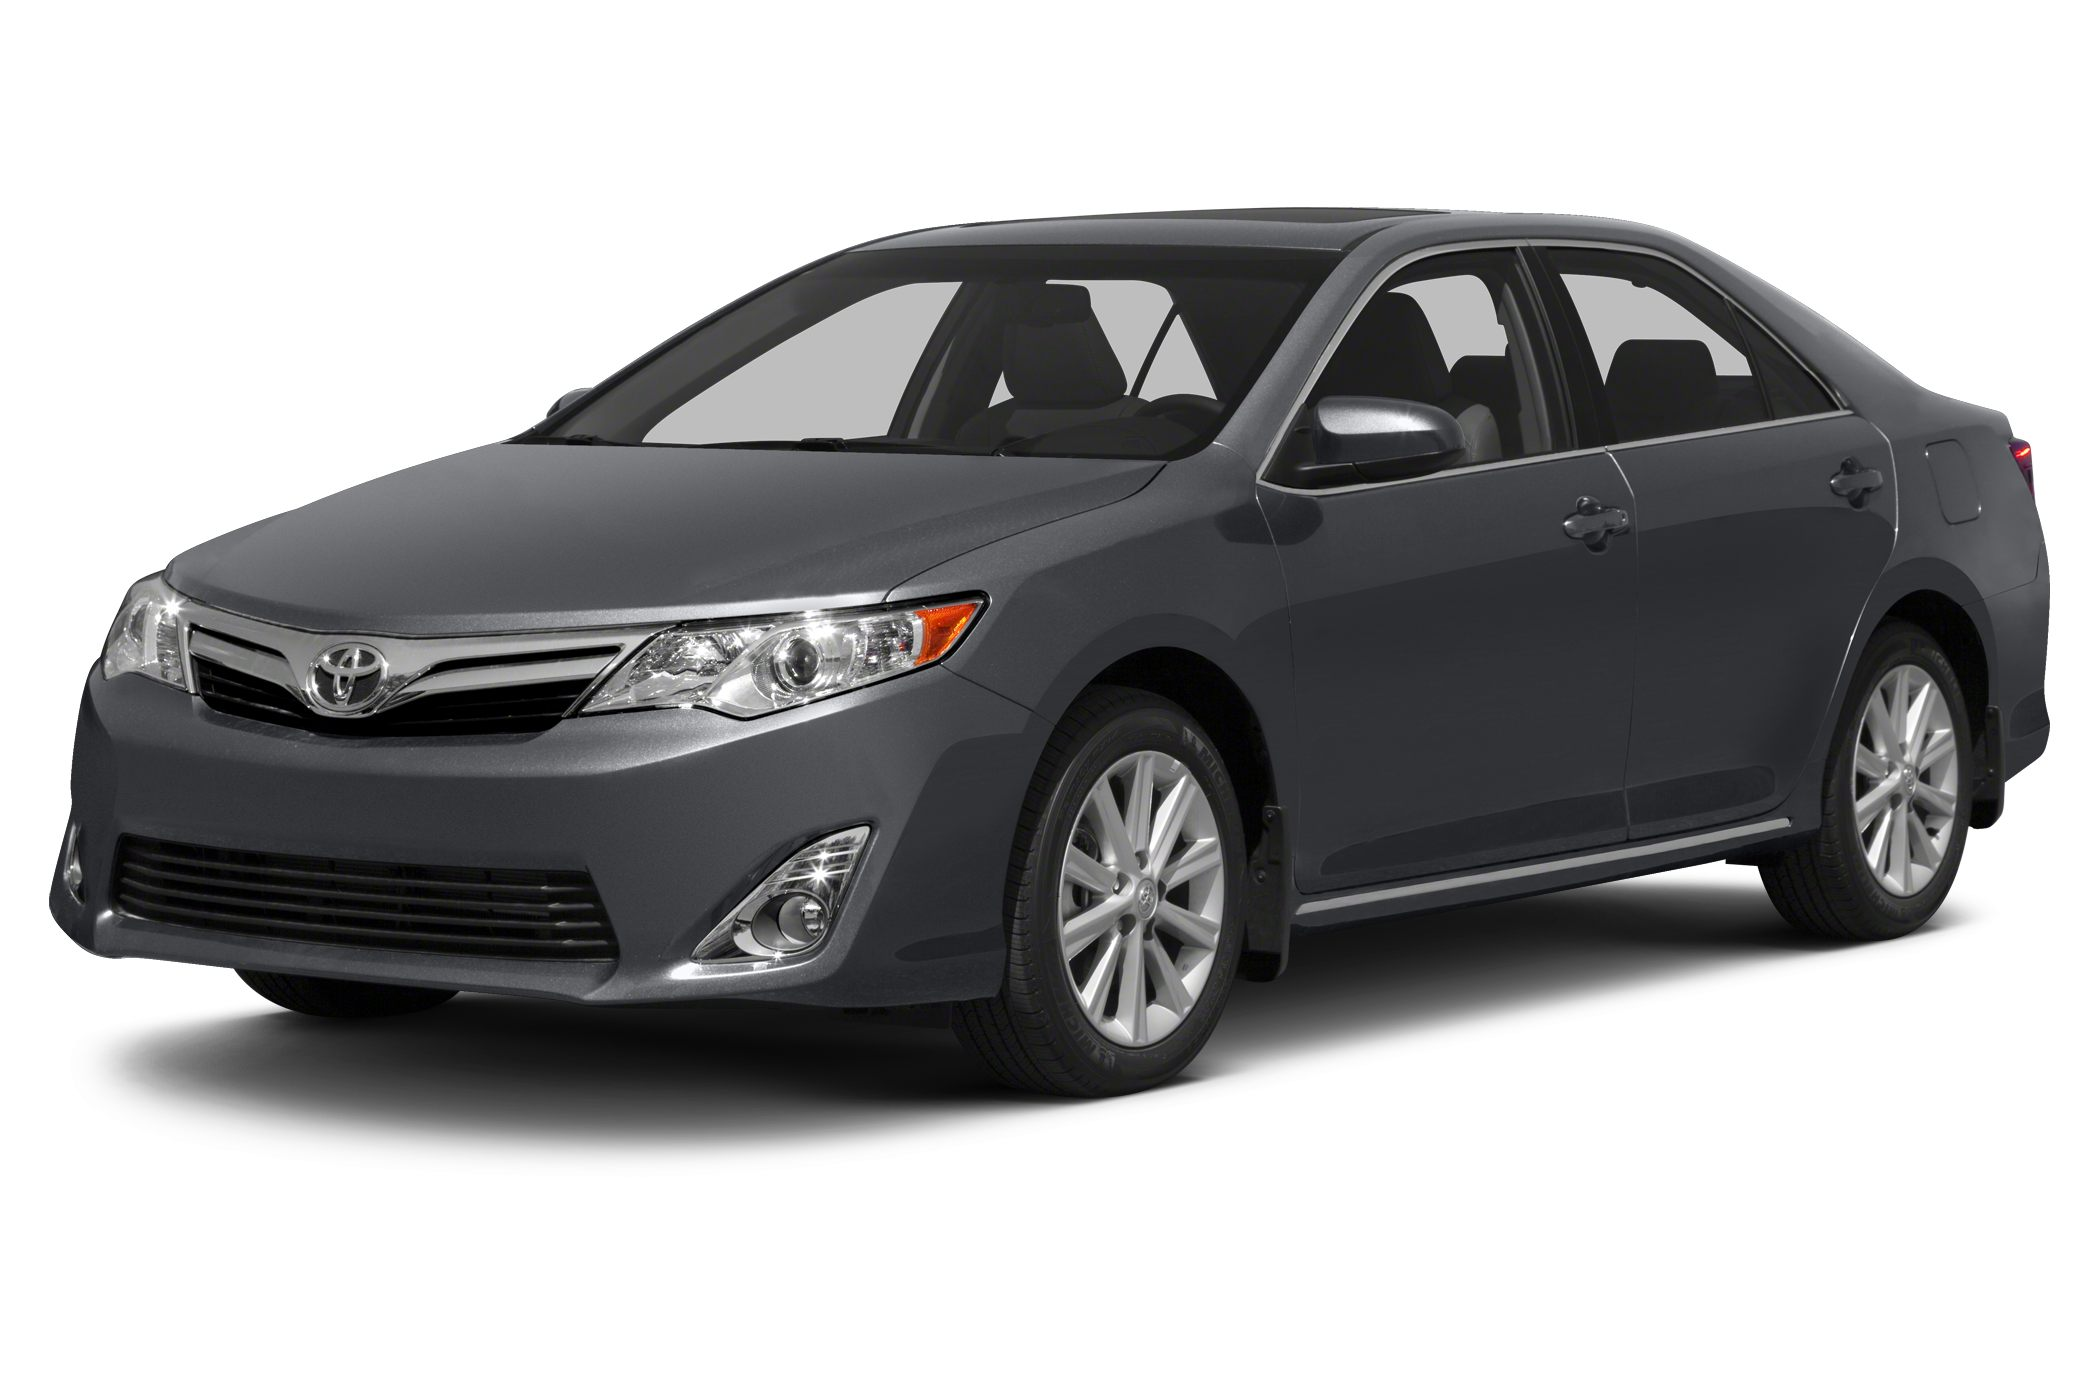 2014 Toyota Camry L For more information about this vehicleplease contact Teresa in the Internet D